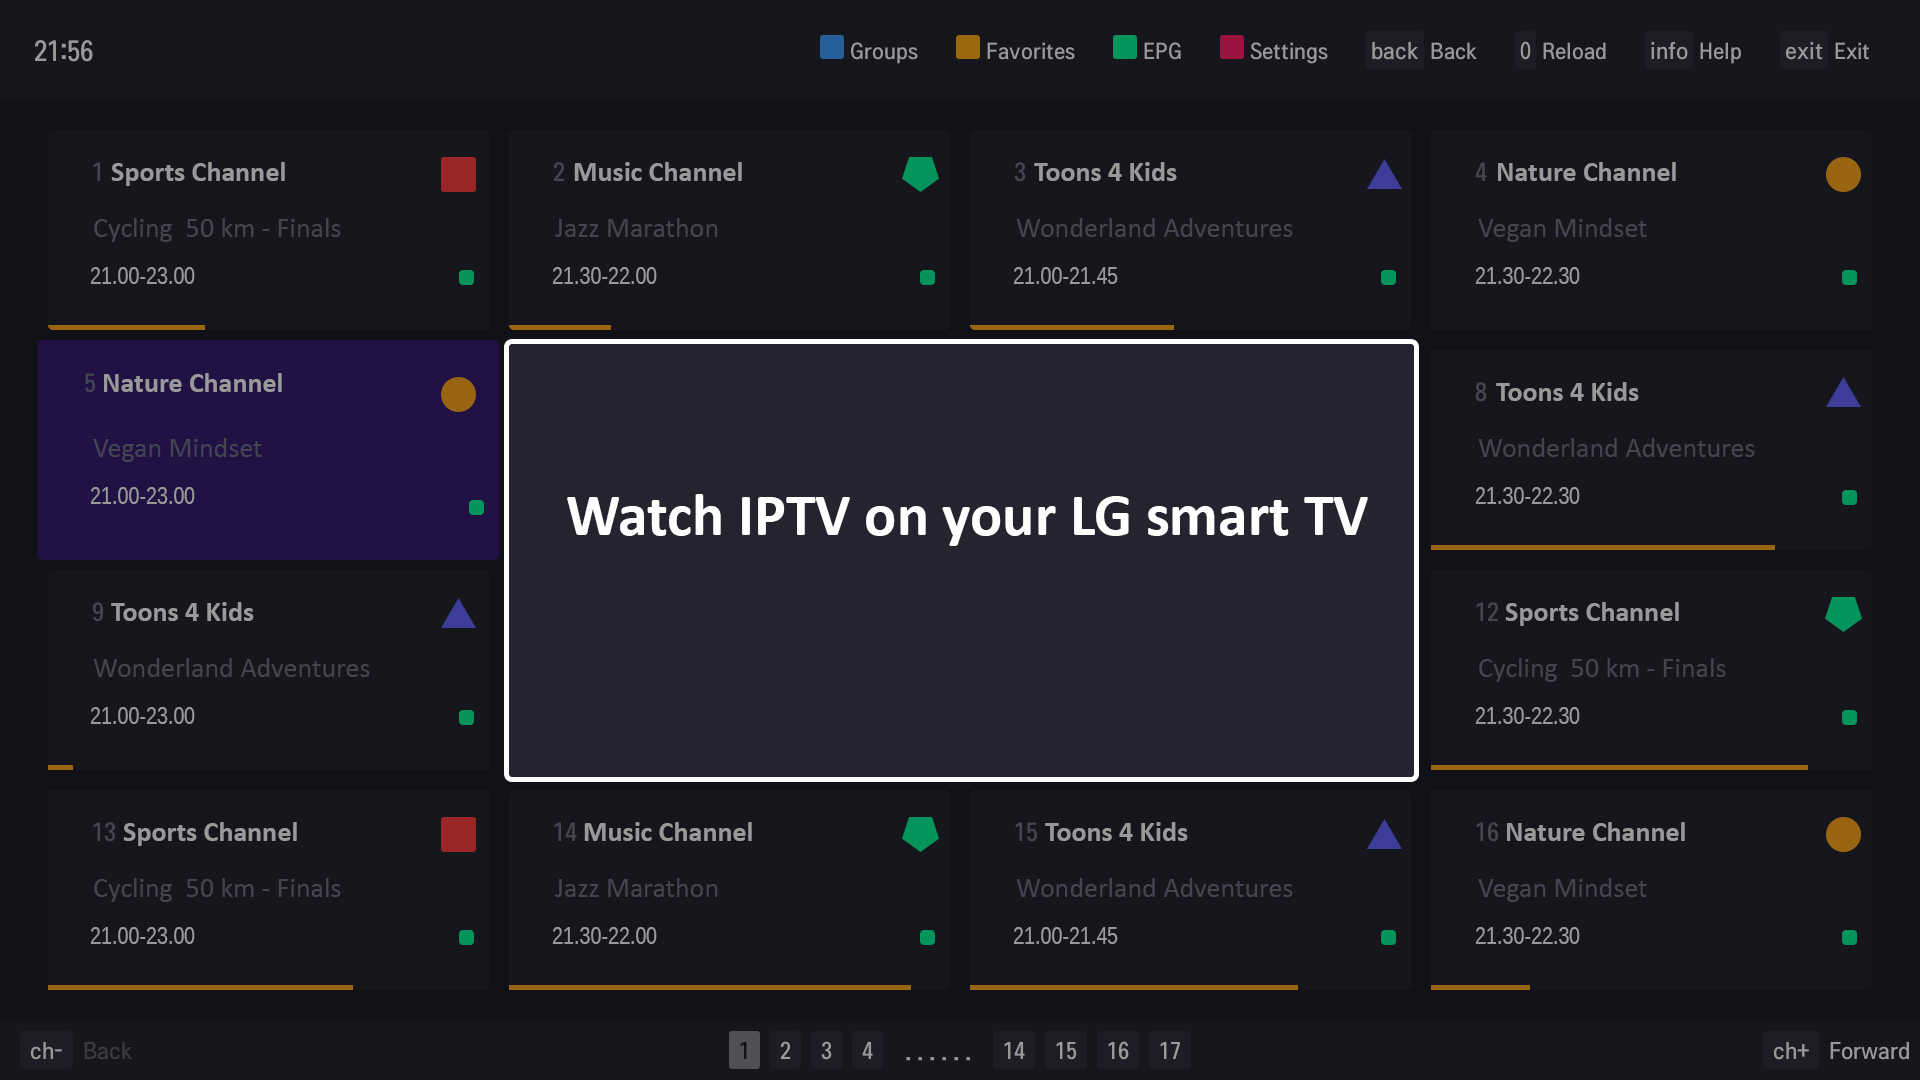 Watch IPTV on your LG smart TV